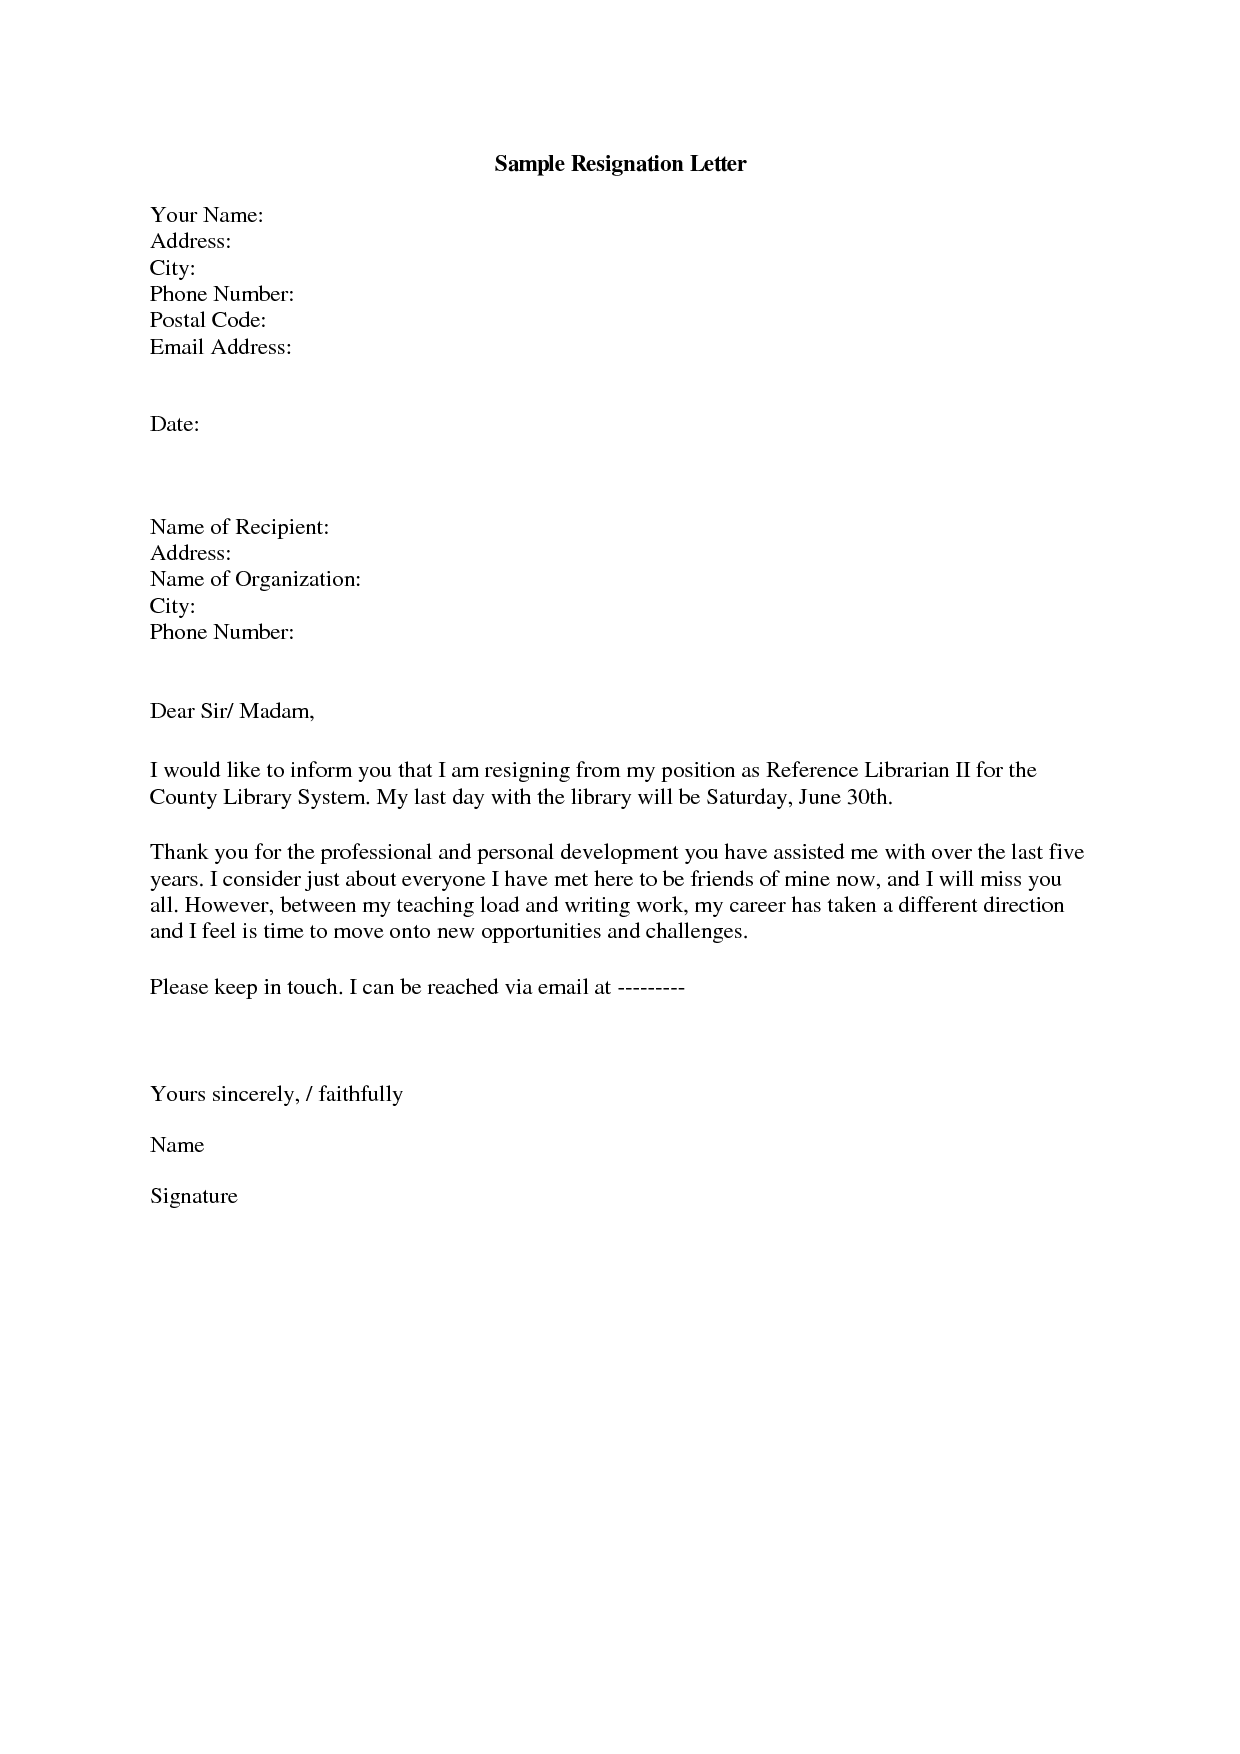 Best 25 formal resignation letter sample ideas on pinterest best 25 formal resignation letter sample ideas on pinterest professional resignation letter sample of resignation letter and resignation letter altavistaventures Images